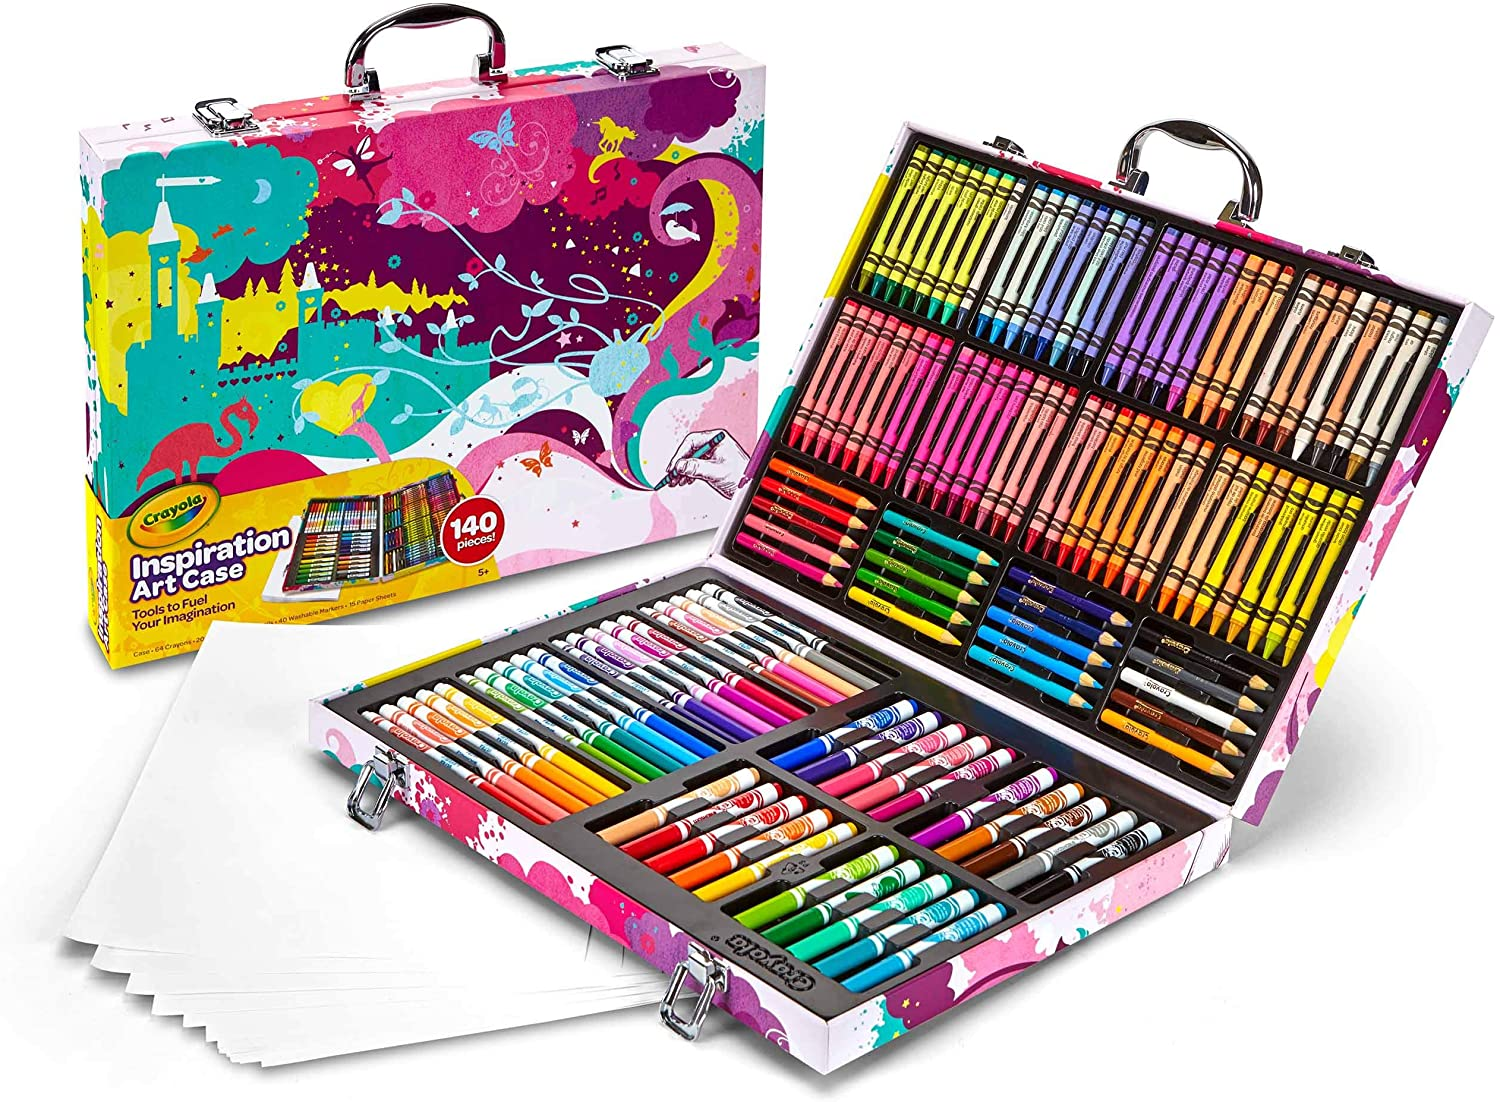 Crayola Art Case Gifts for Kids